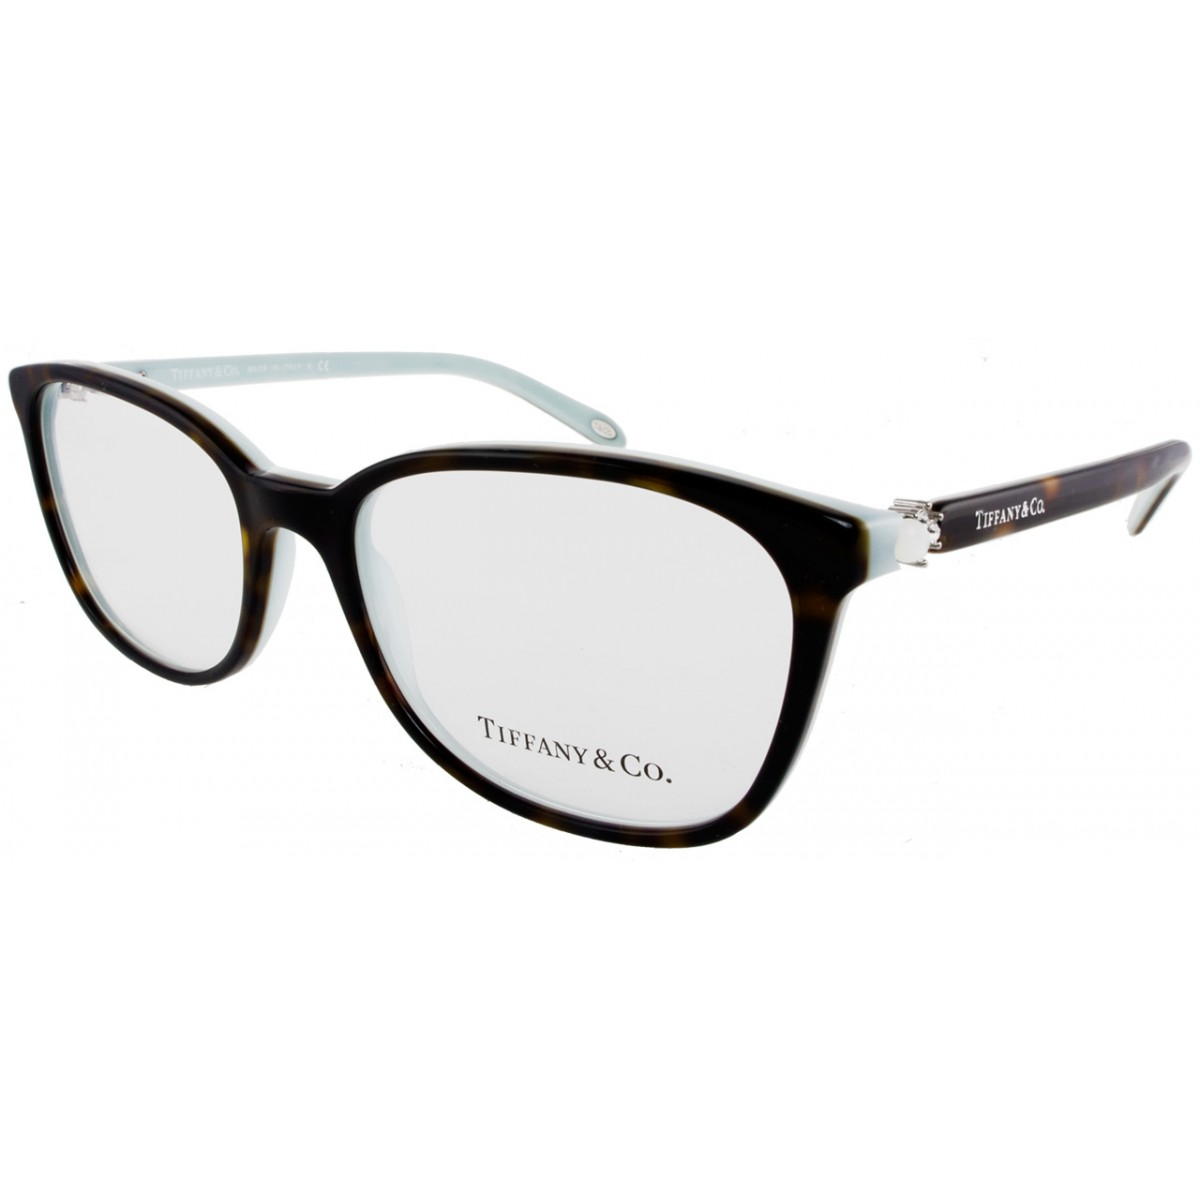 cbc119f06351 Online Eyeglasses with Customer Service Center in California Tiffany ...